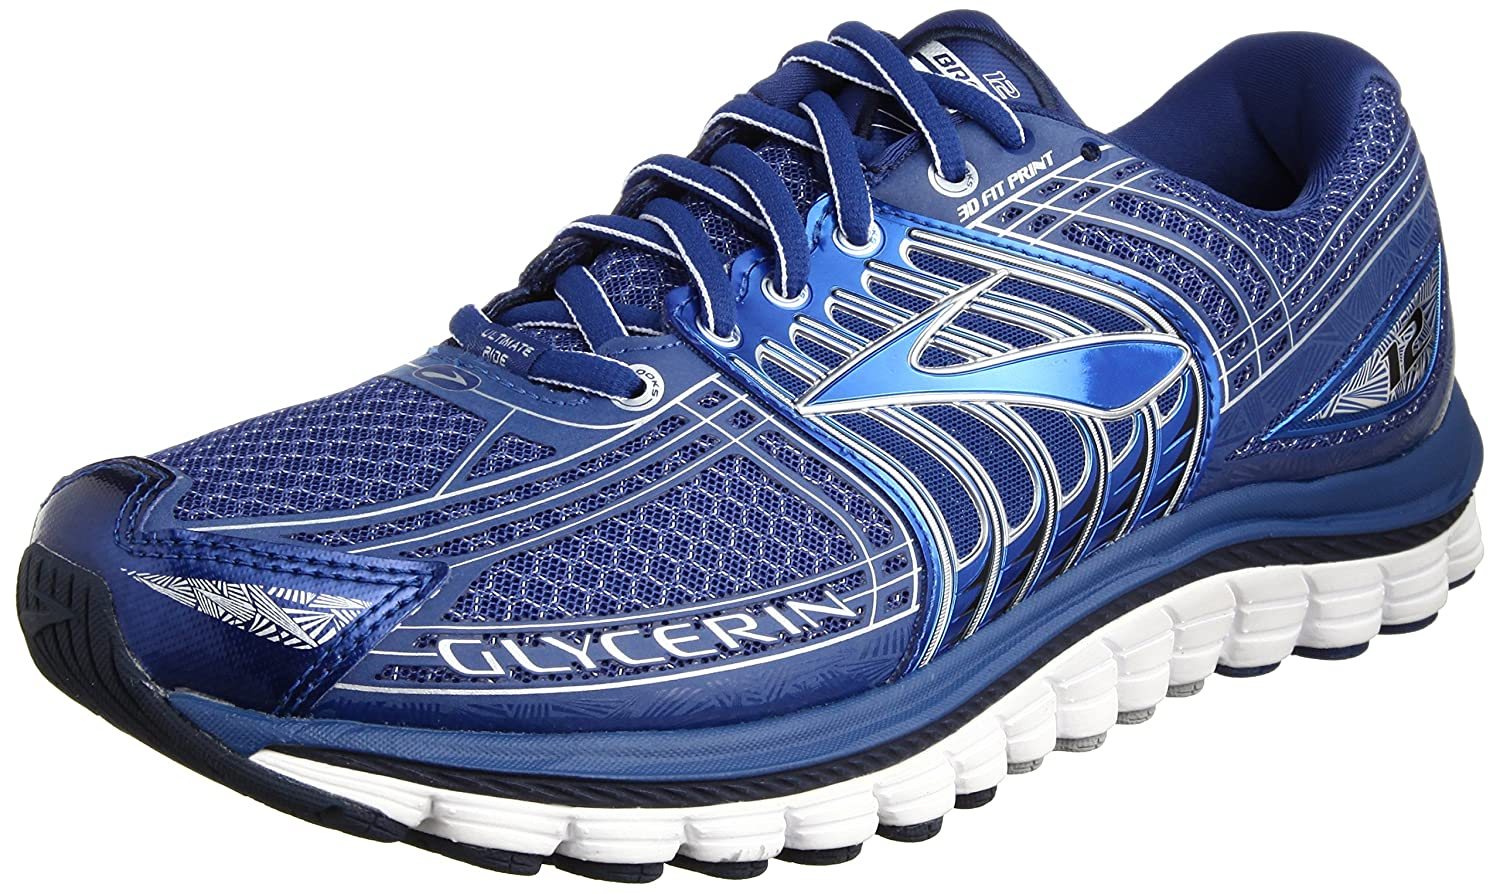 MMen's 12 Glycerin blue Brooks ShoesM bluesilvers Running 5 10 UMpqzVS